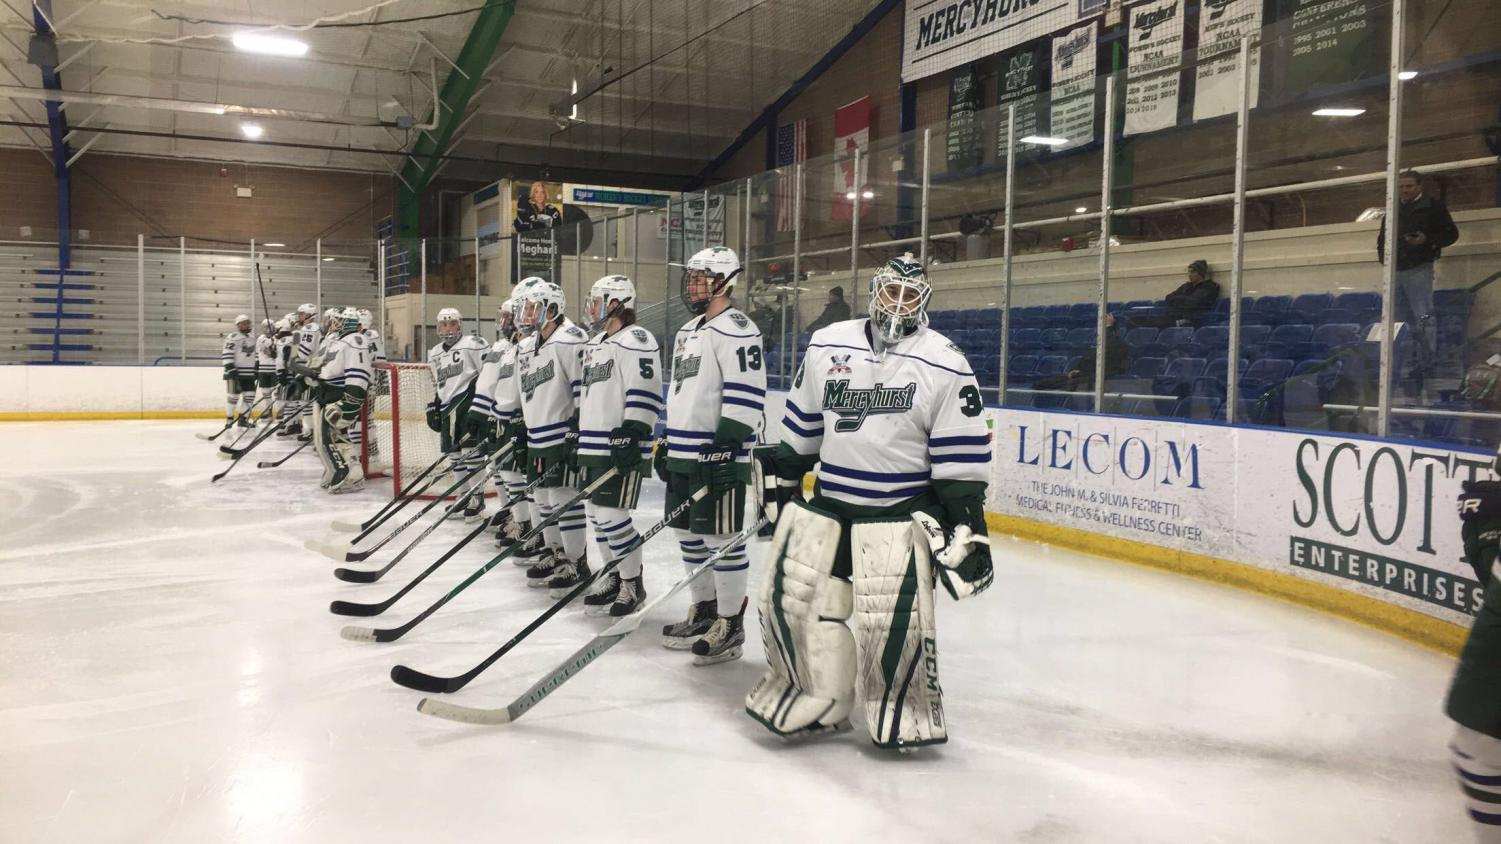 The Lakers line up before their game Feb. 17 in the Mercyhurst Ice Center.  The Lakers beat Robert Morris University twice, including a 3-2 overtime win.